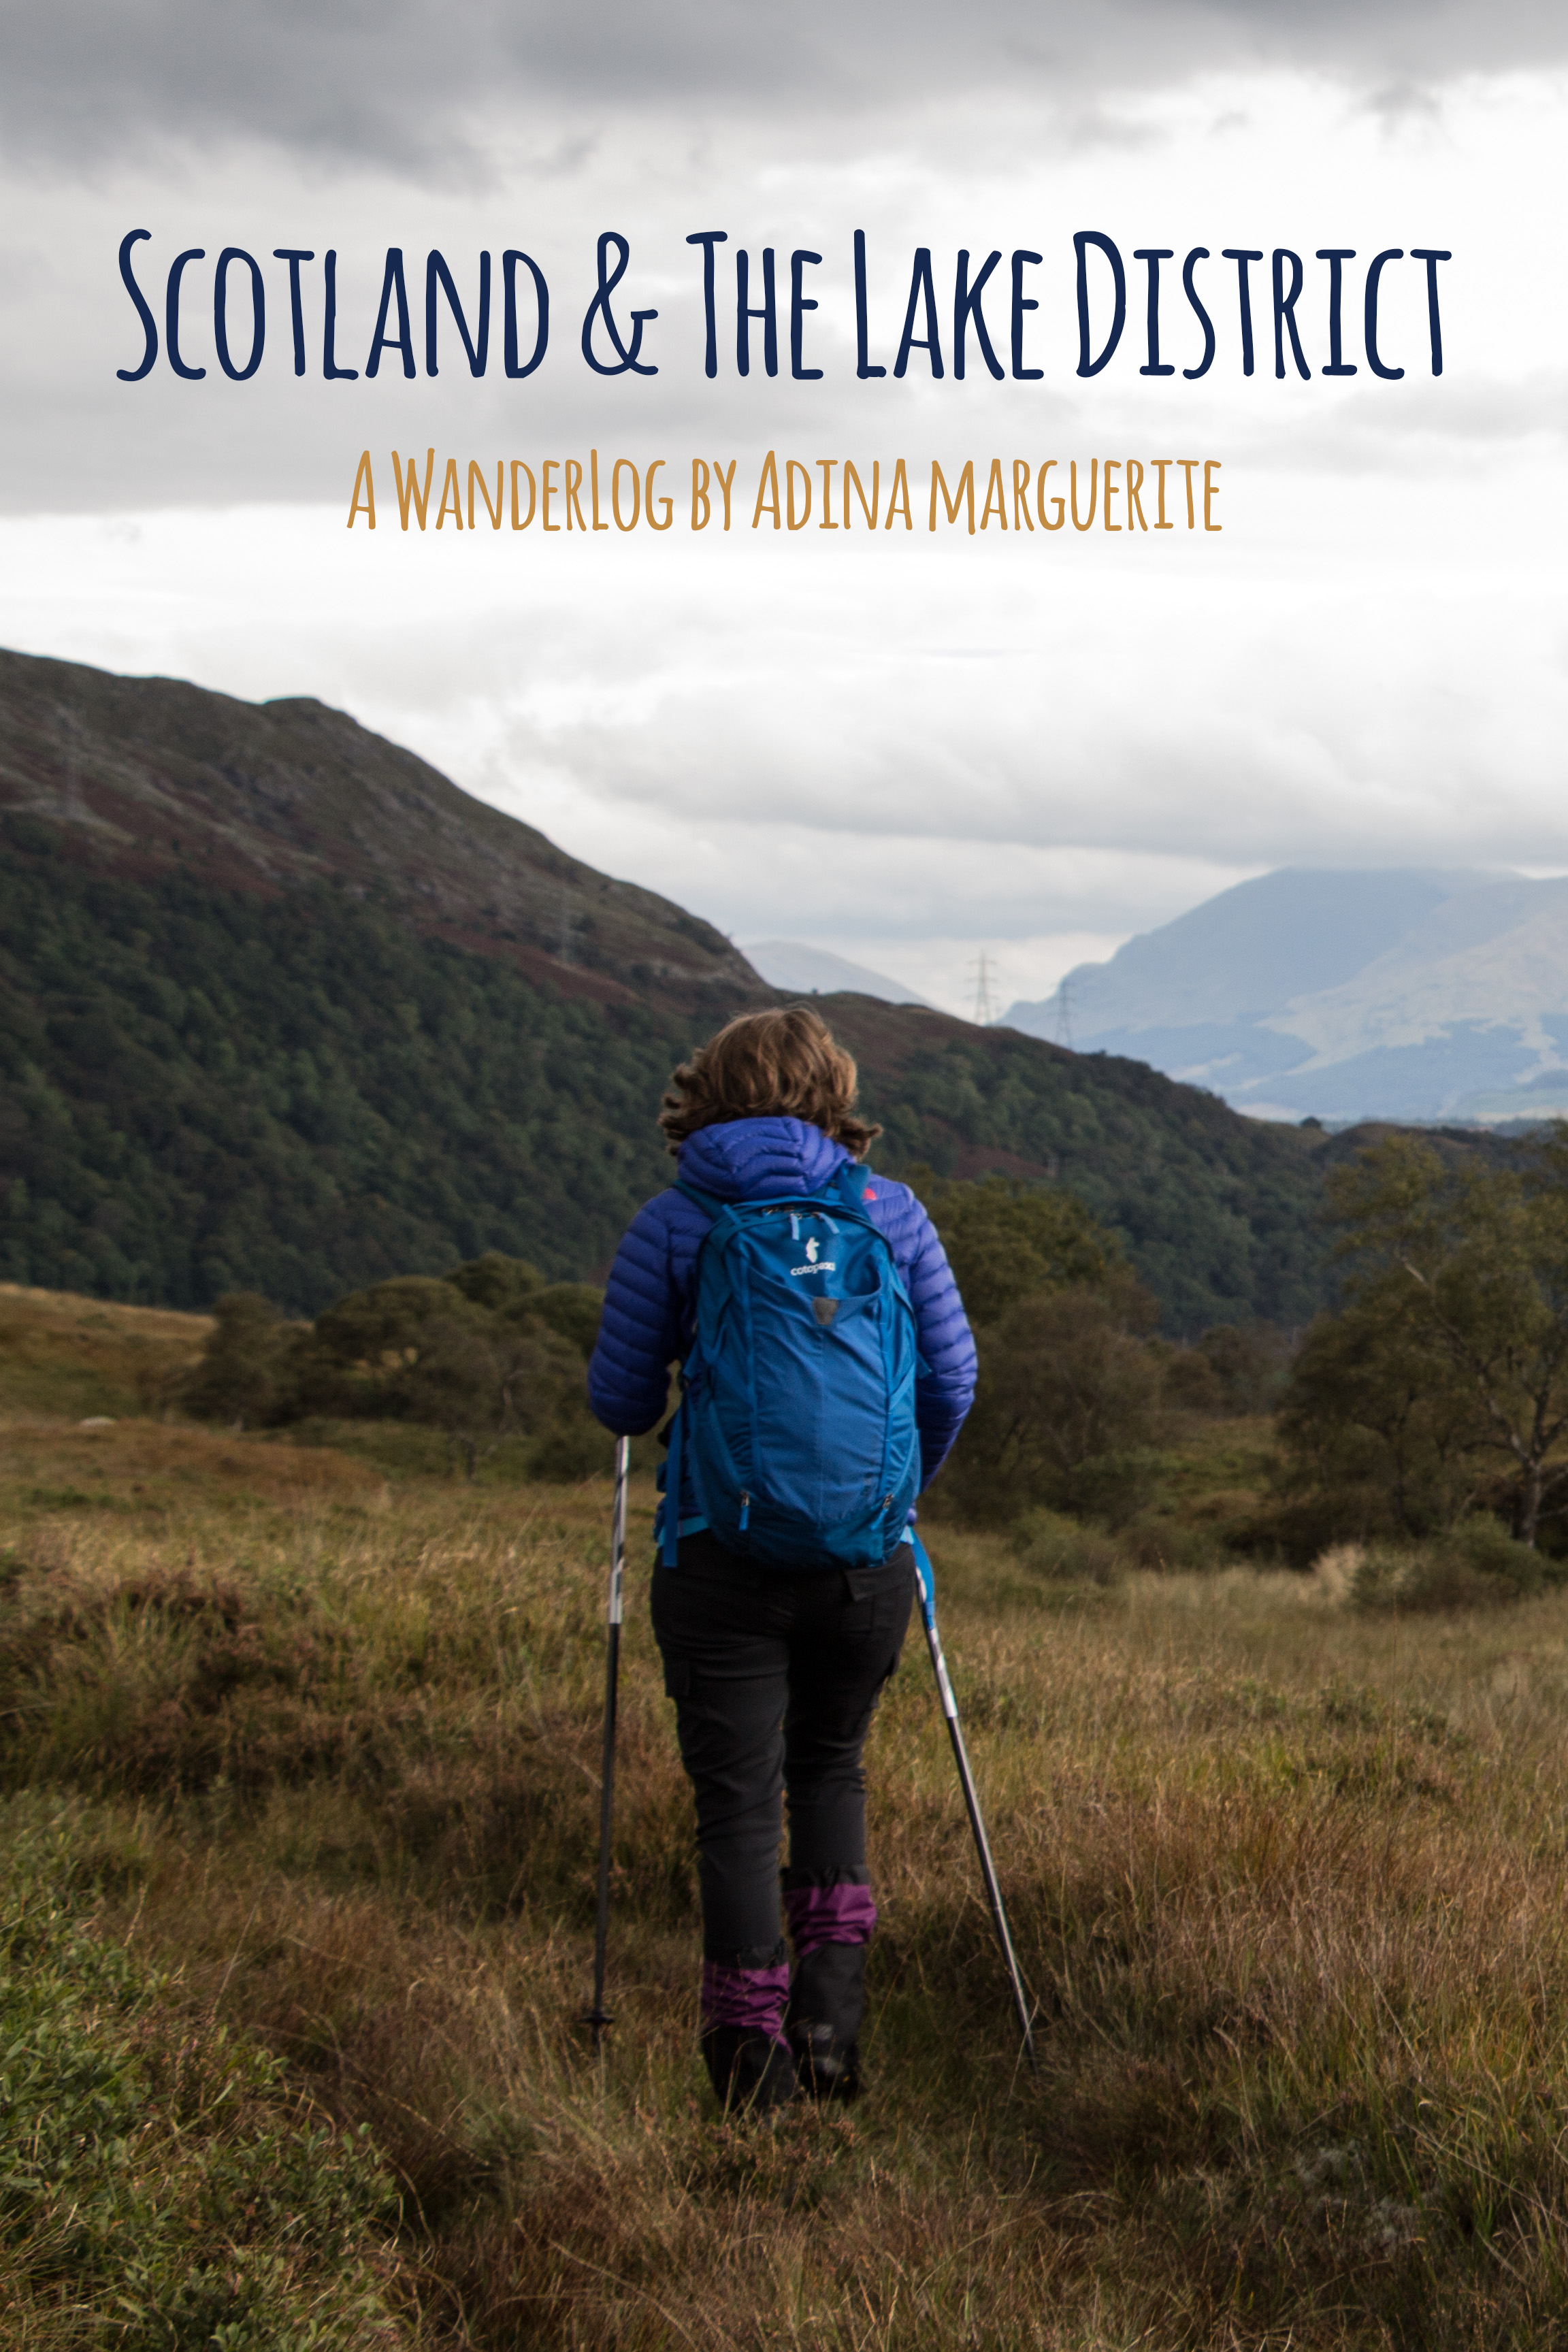 WanderLog: Scotland & The Lake District by Adina Marguerite